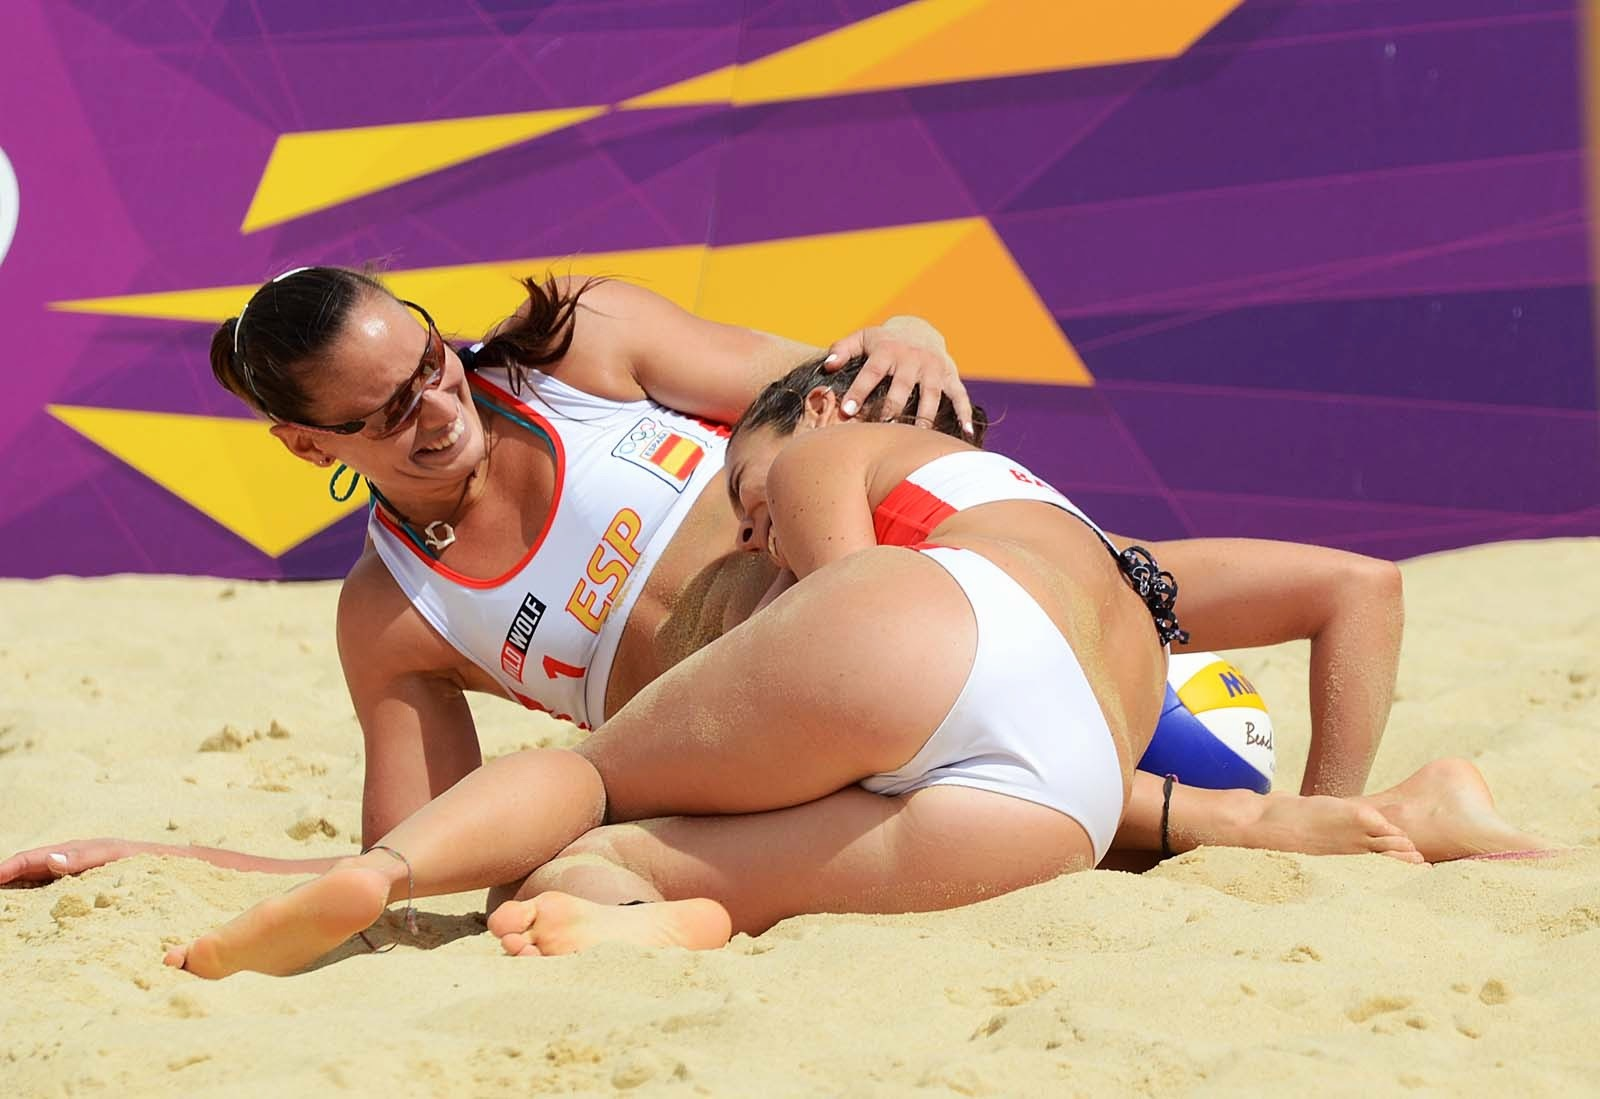 indian-volleyball-girls-thighs-photos-dick-in-the-windtures